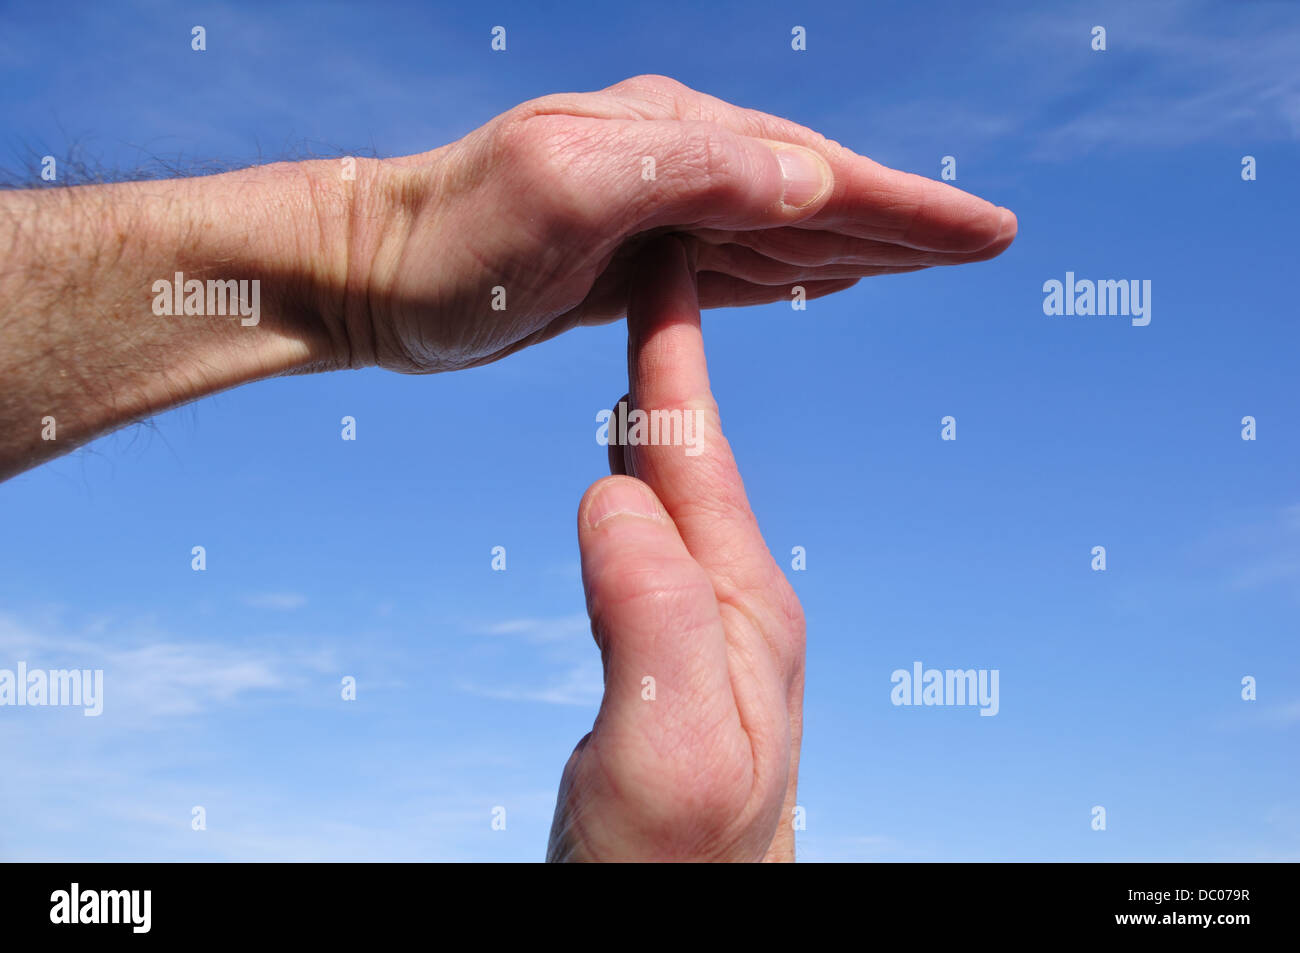 Time out signal / hand gesture - Stock Image